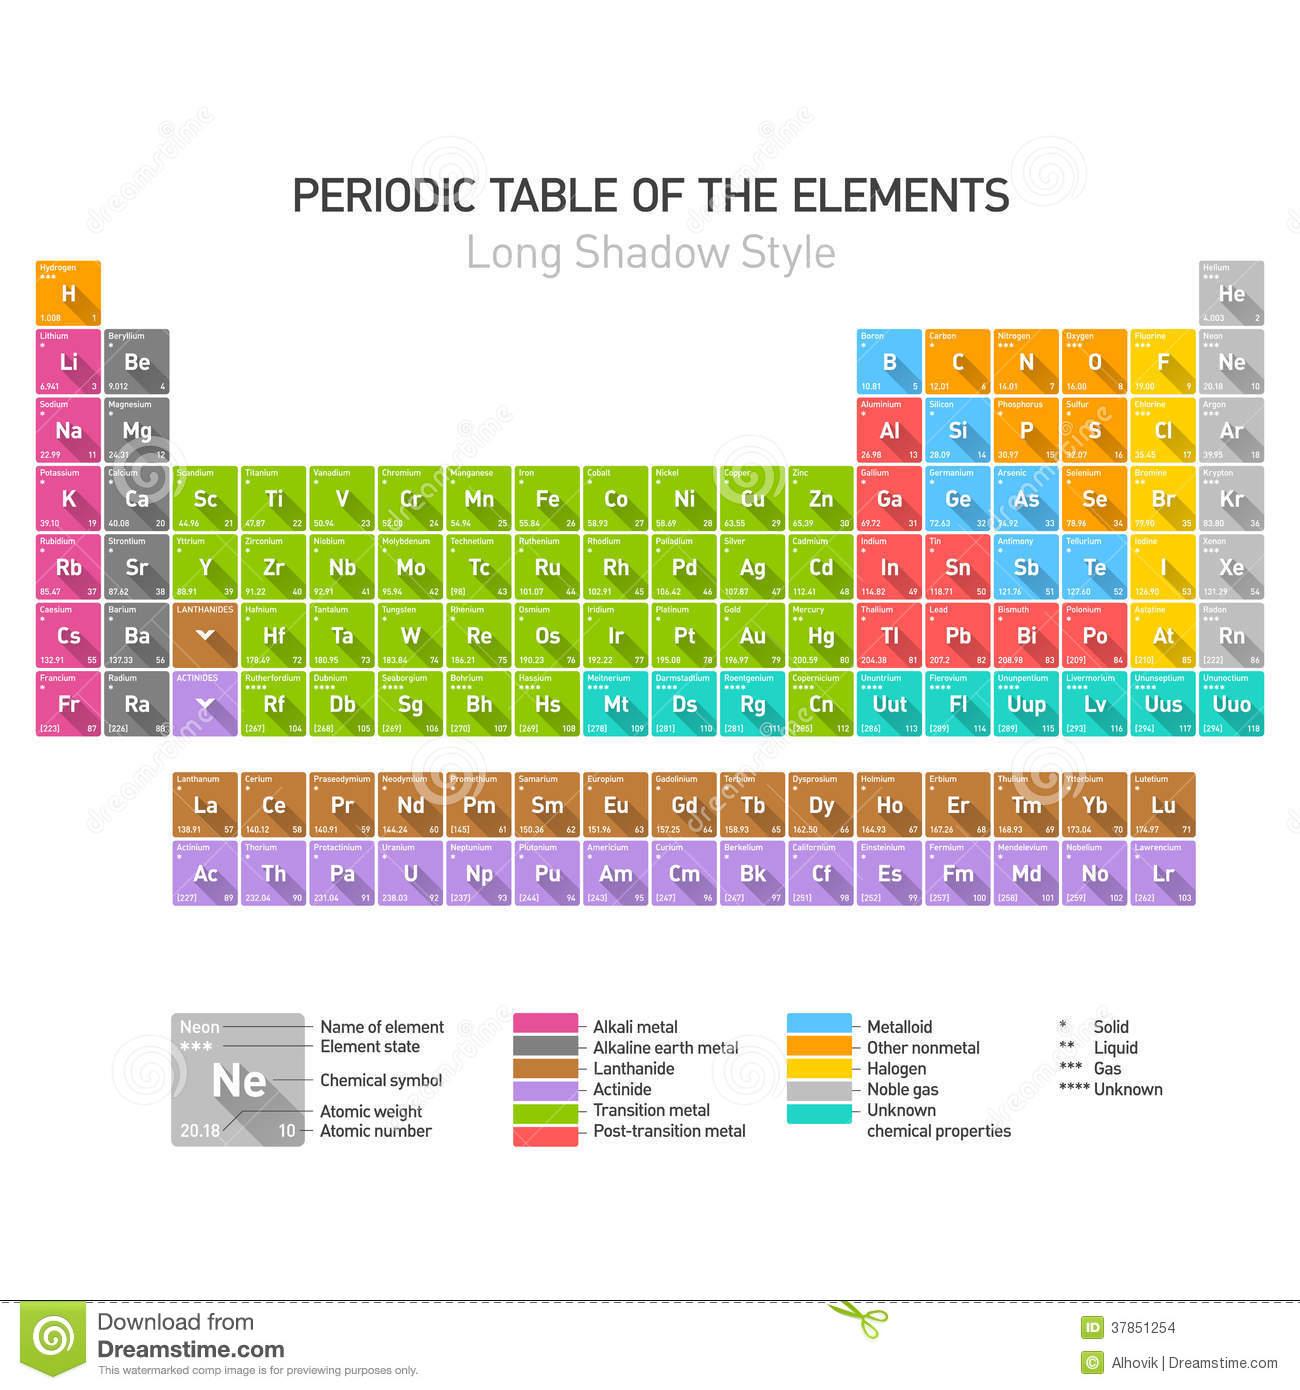 Periodic table of the chemical elements stock images - Periodic table of the chemical elements ...